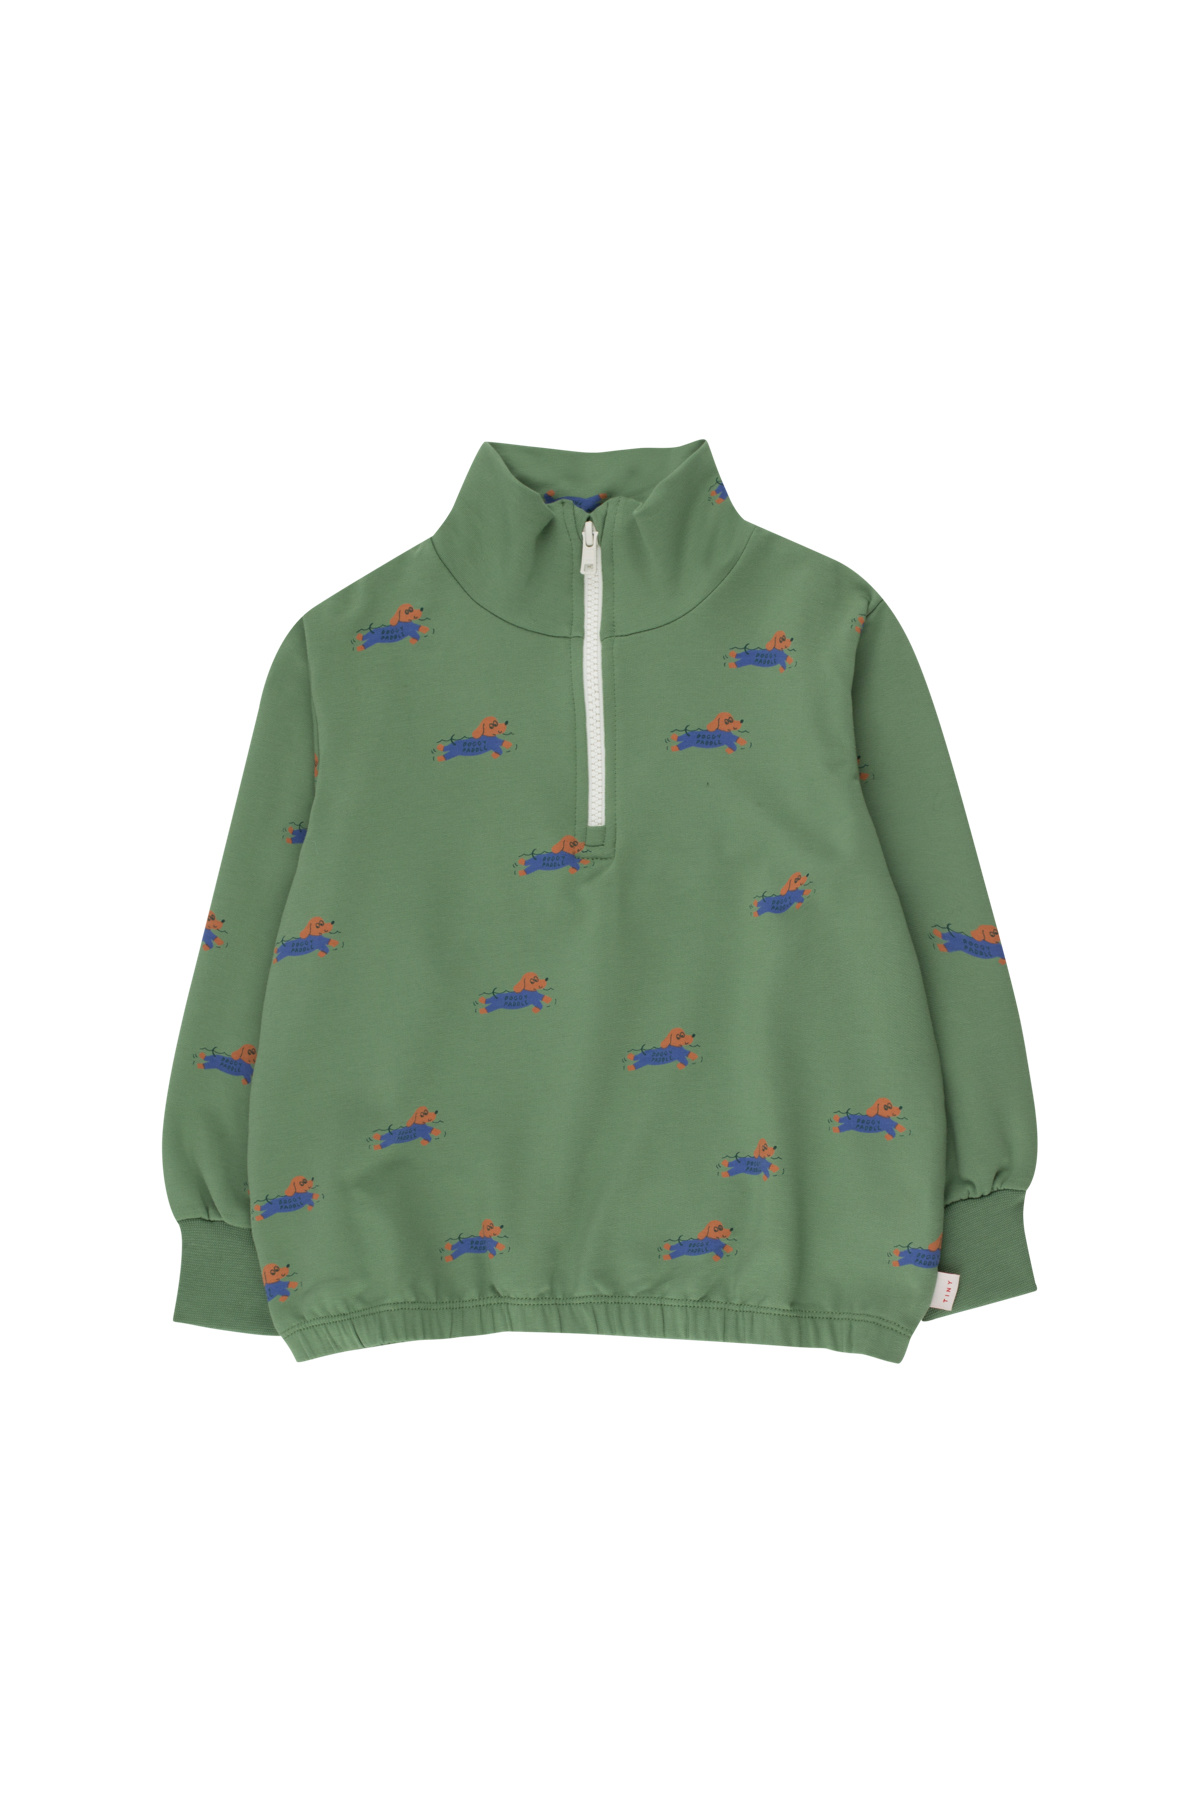 Doggy paddle mockneck sweatshirt - Green / Iris Blue-1